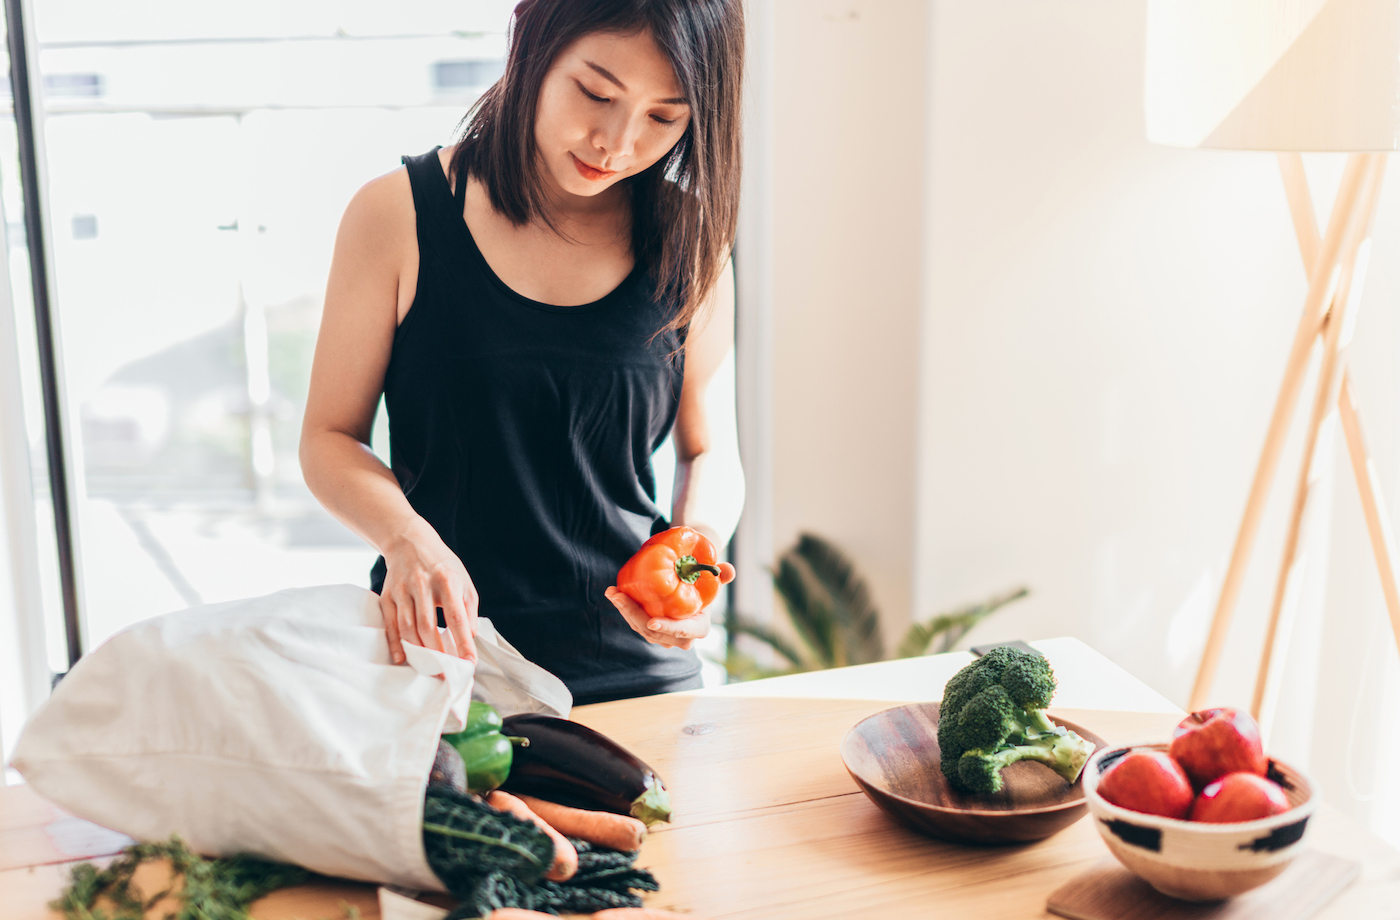 Thumbnail for Good Nutrition for all Is Impossible When Most Dietitians Are White